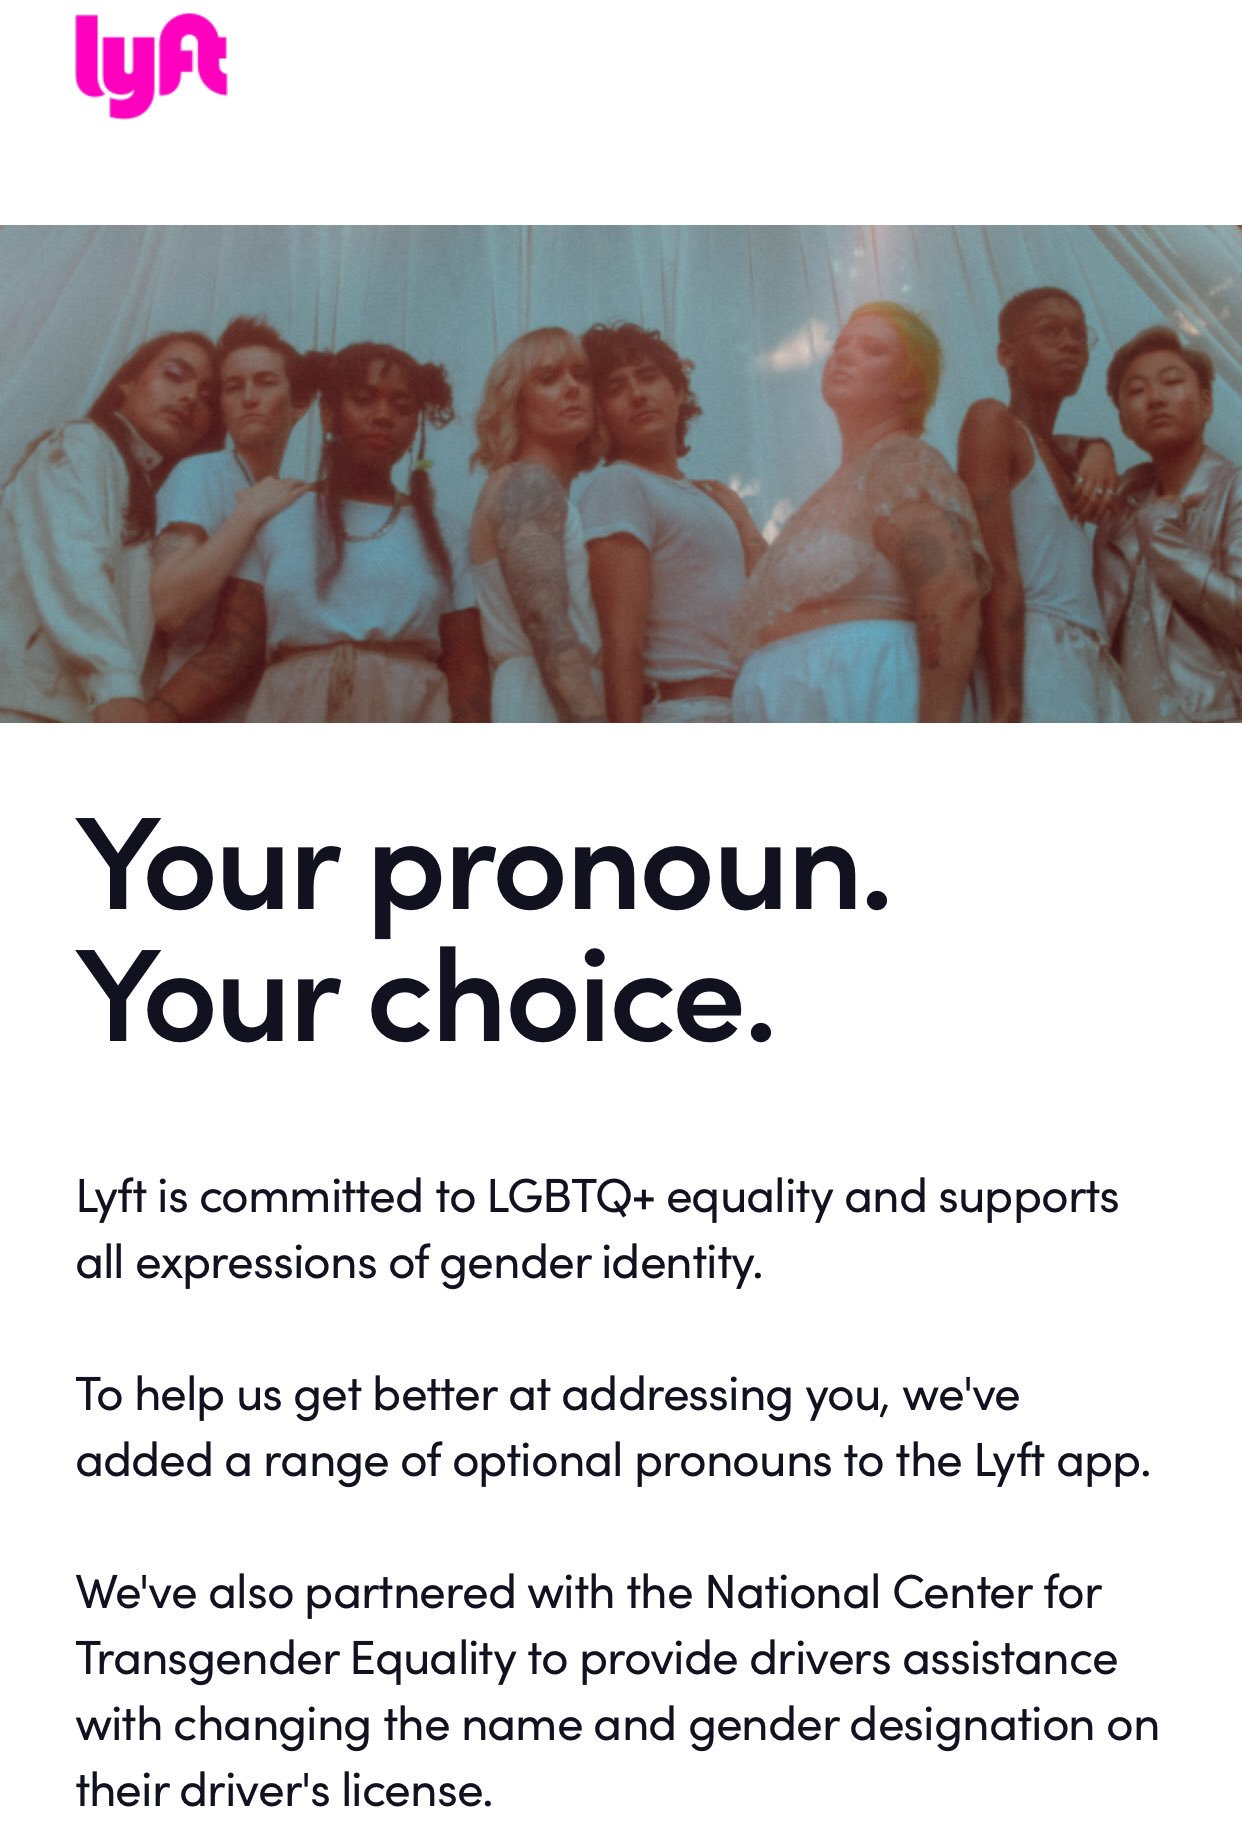 Lyft announces to users that they are now able to select a pronoun option in the app. (Lyft)